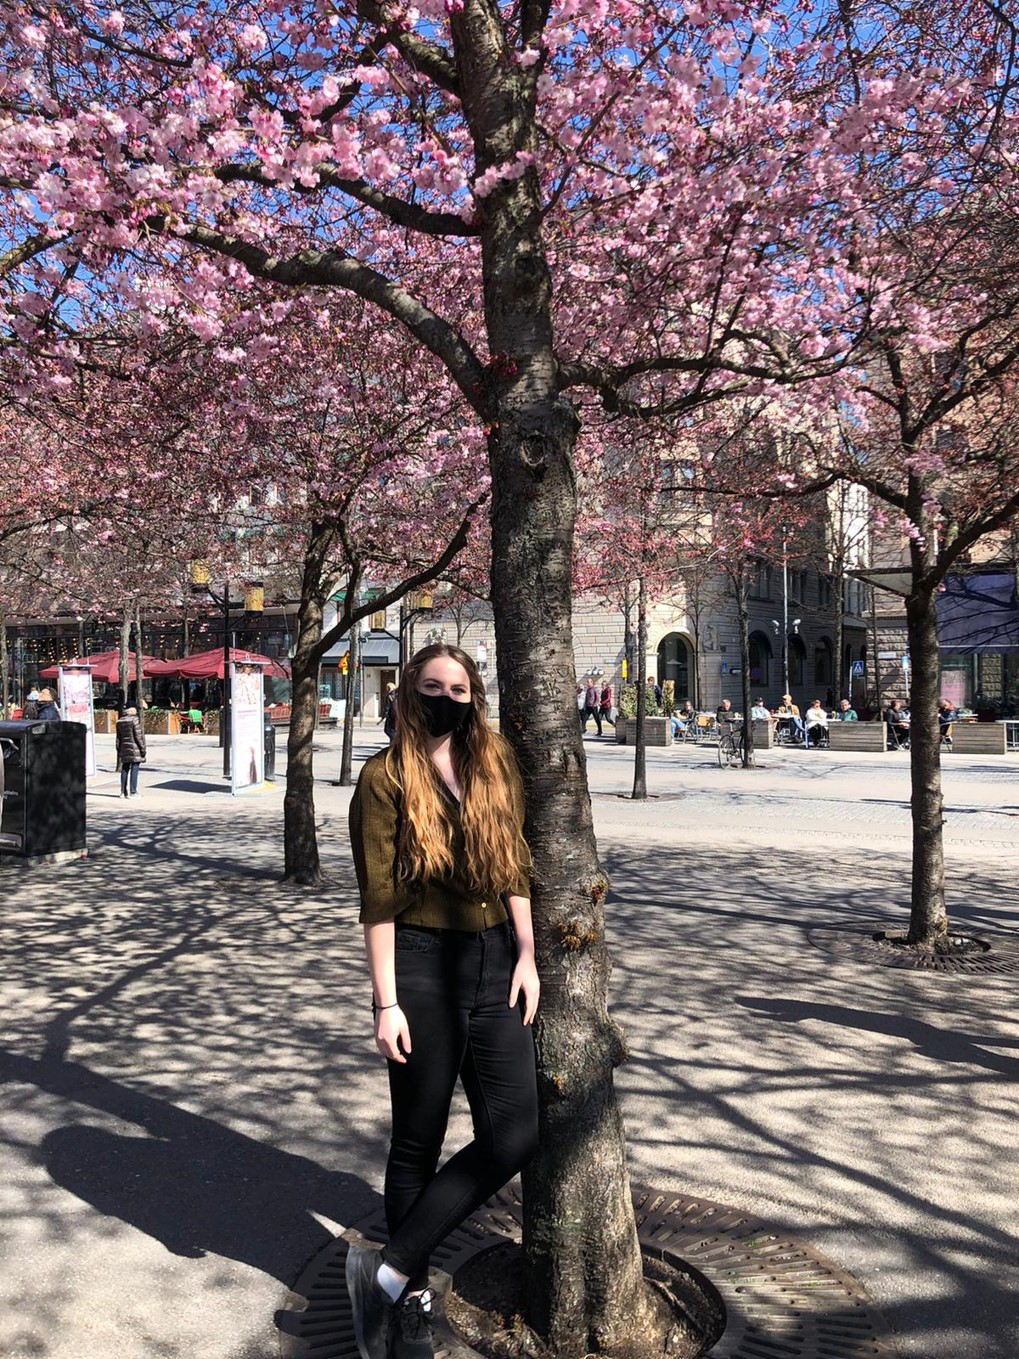 woman stands under flowering tree near buildings during daytime